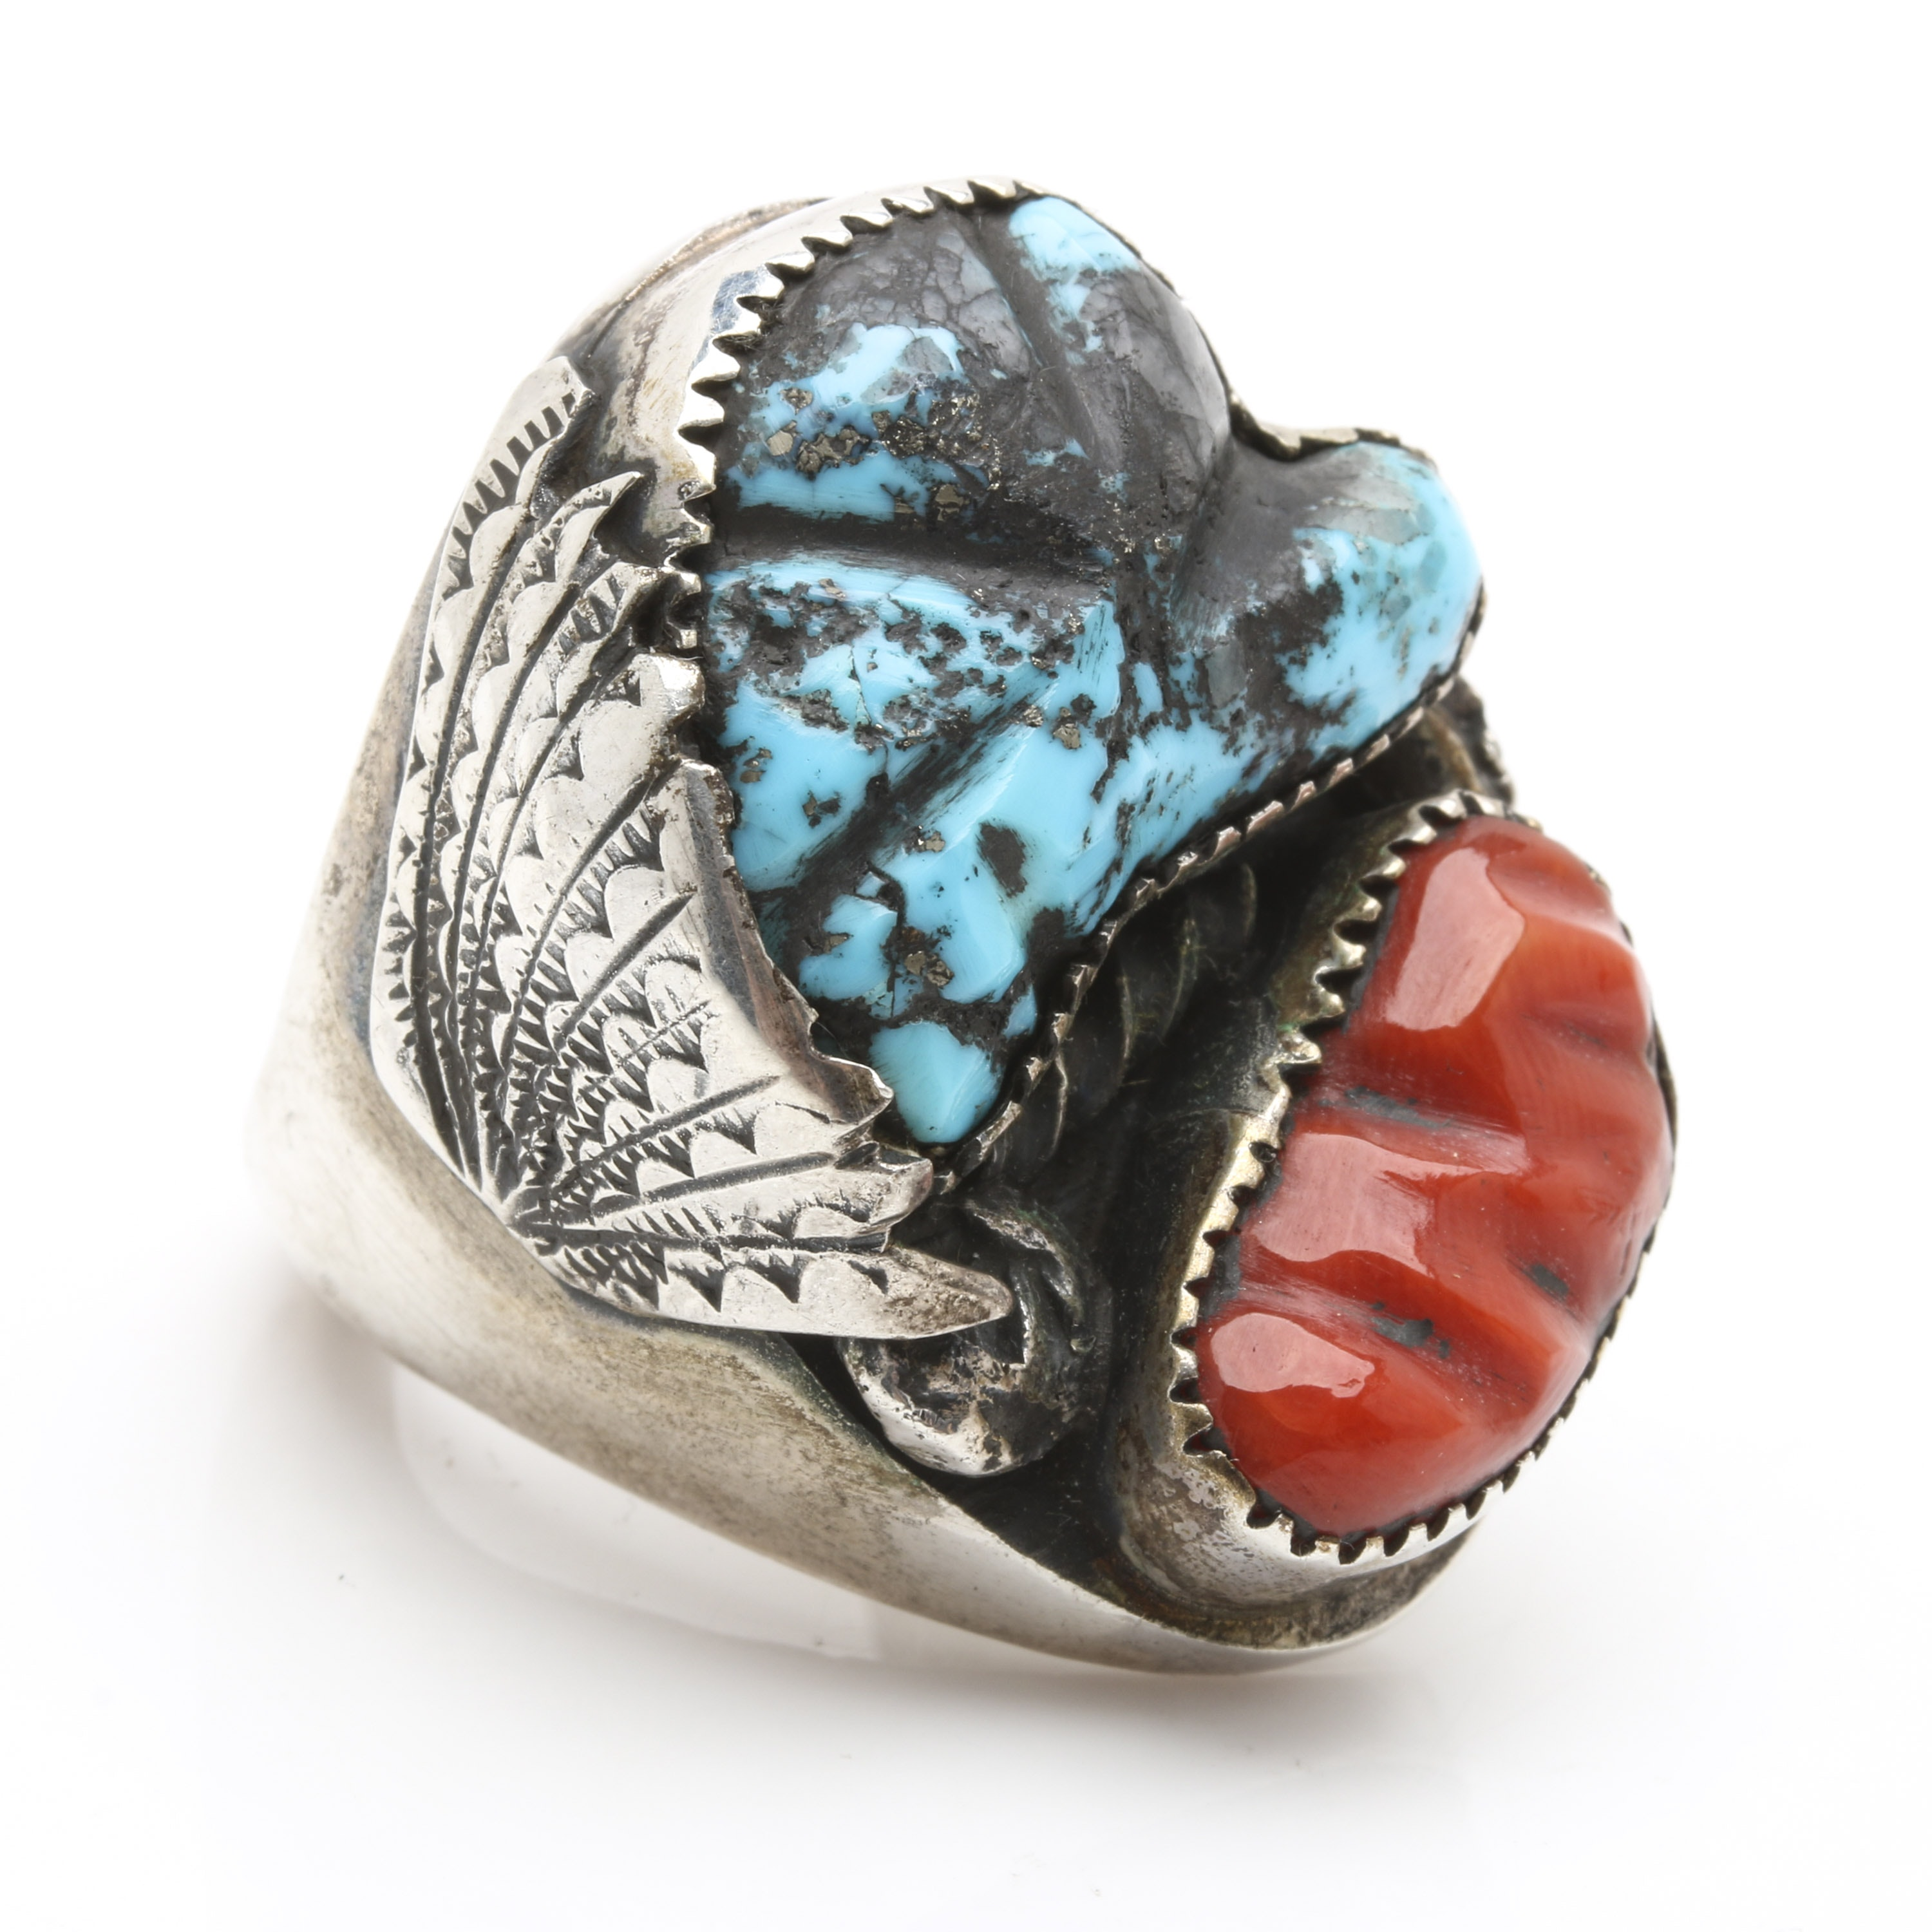 P. Padilla Navajo Diné Sterling Silver Turquoise and Coral Ring